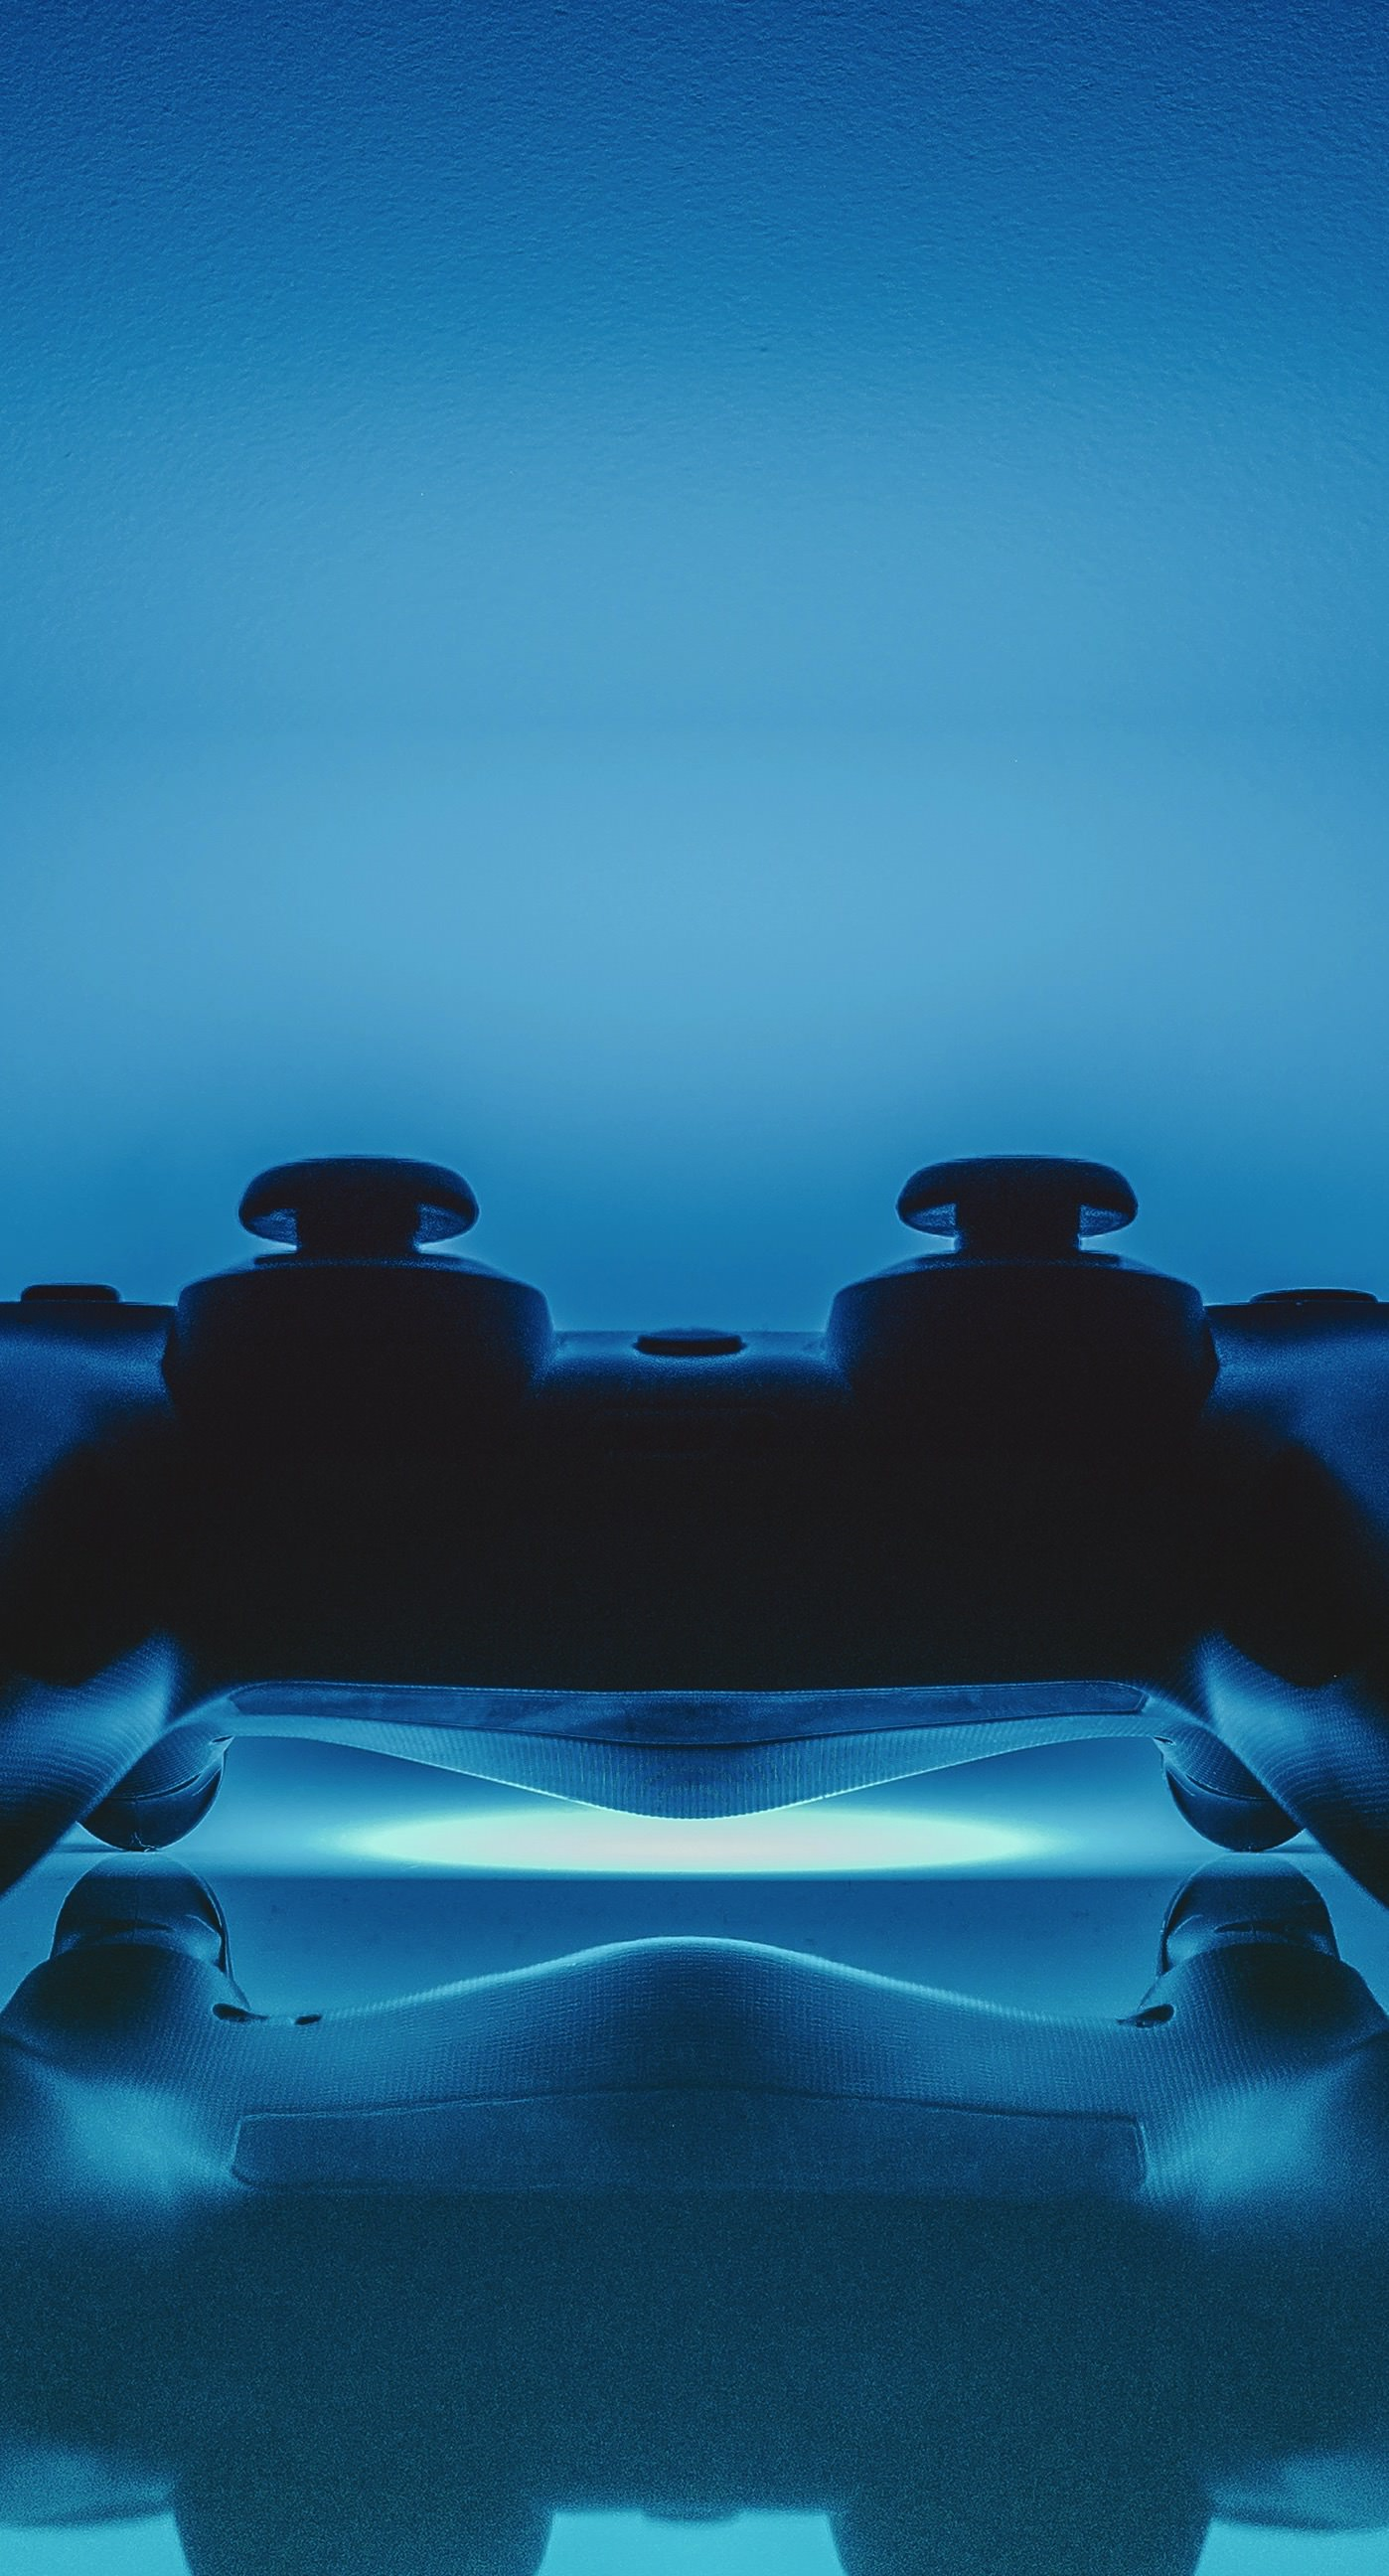 ps controller blue cool | wallpaper.sc iphone7plus